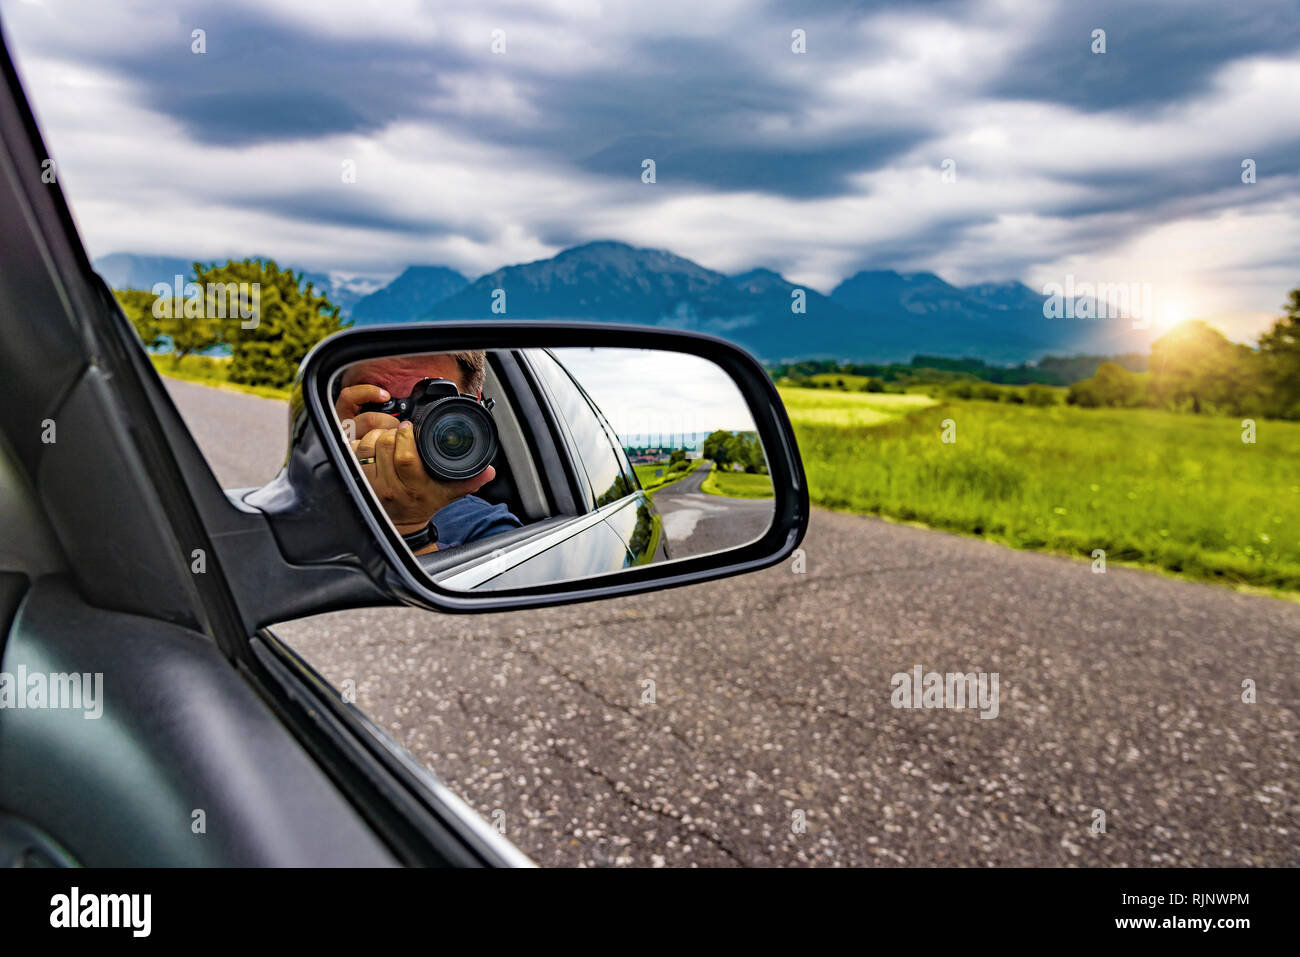 Reflection Of A Photographer With A Camera In The Rear View Mirror Of A Car In Nature Stock Photo Alamy